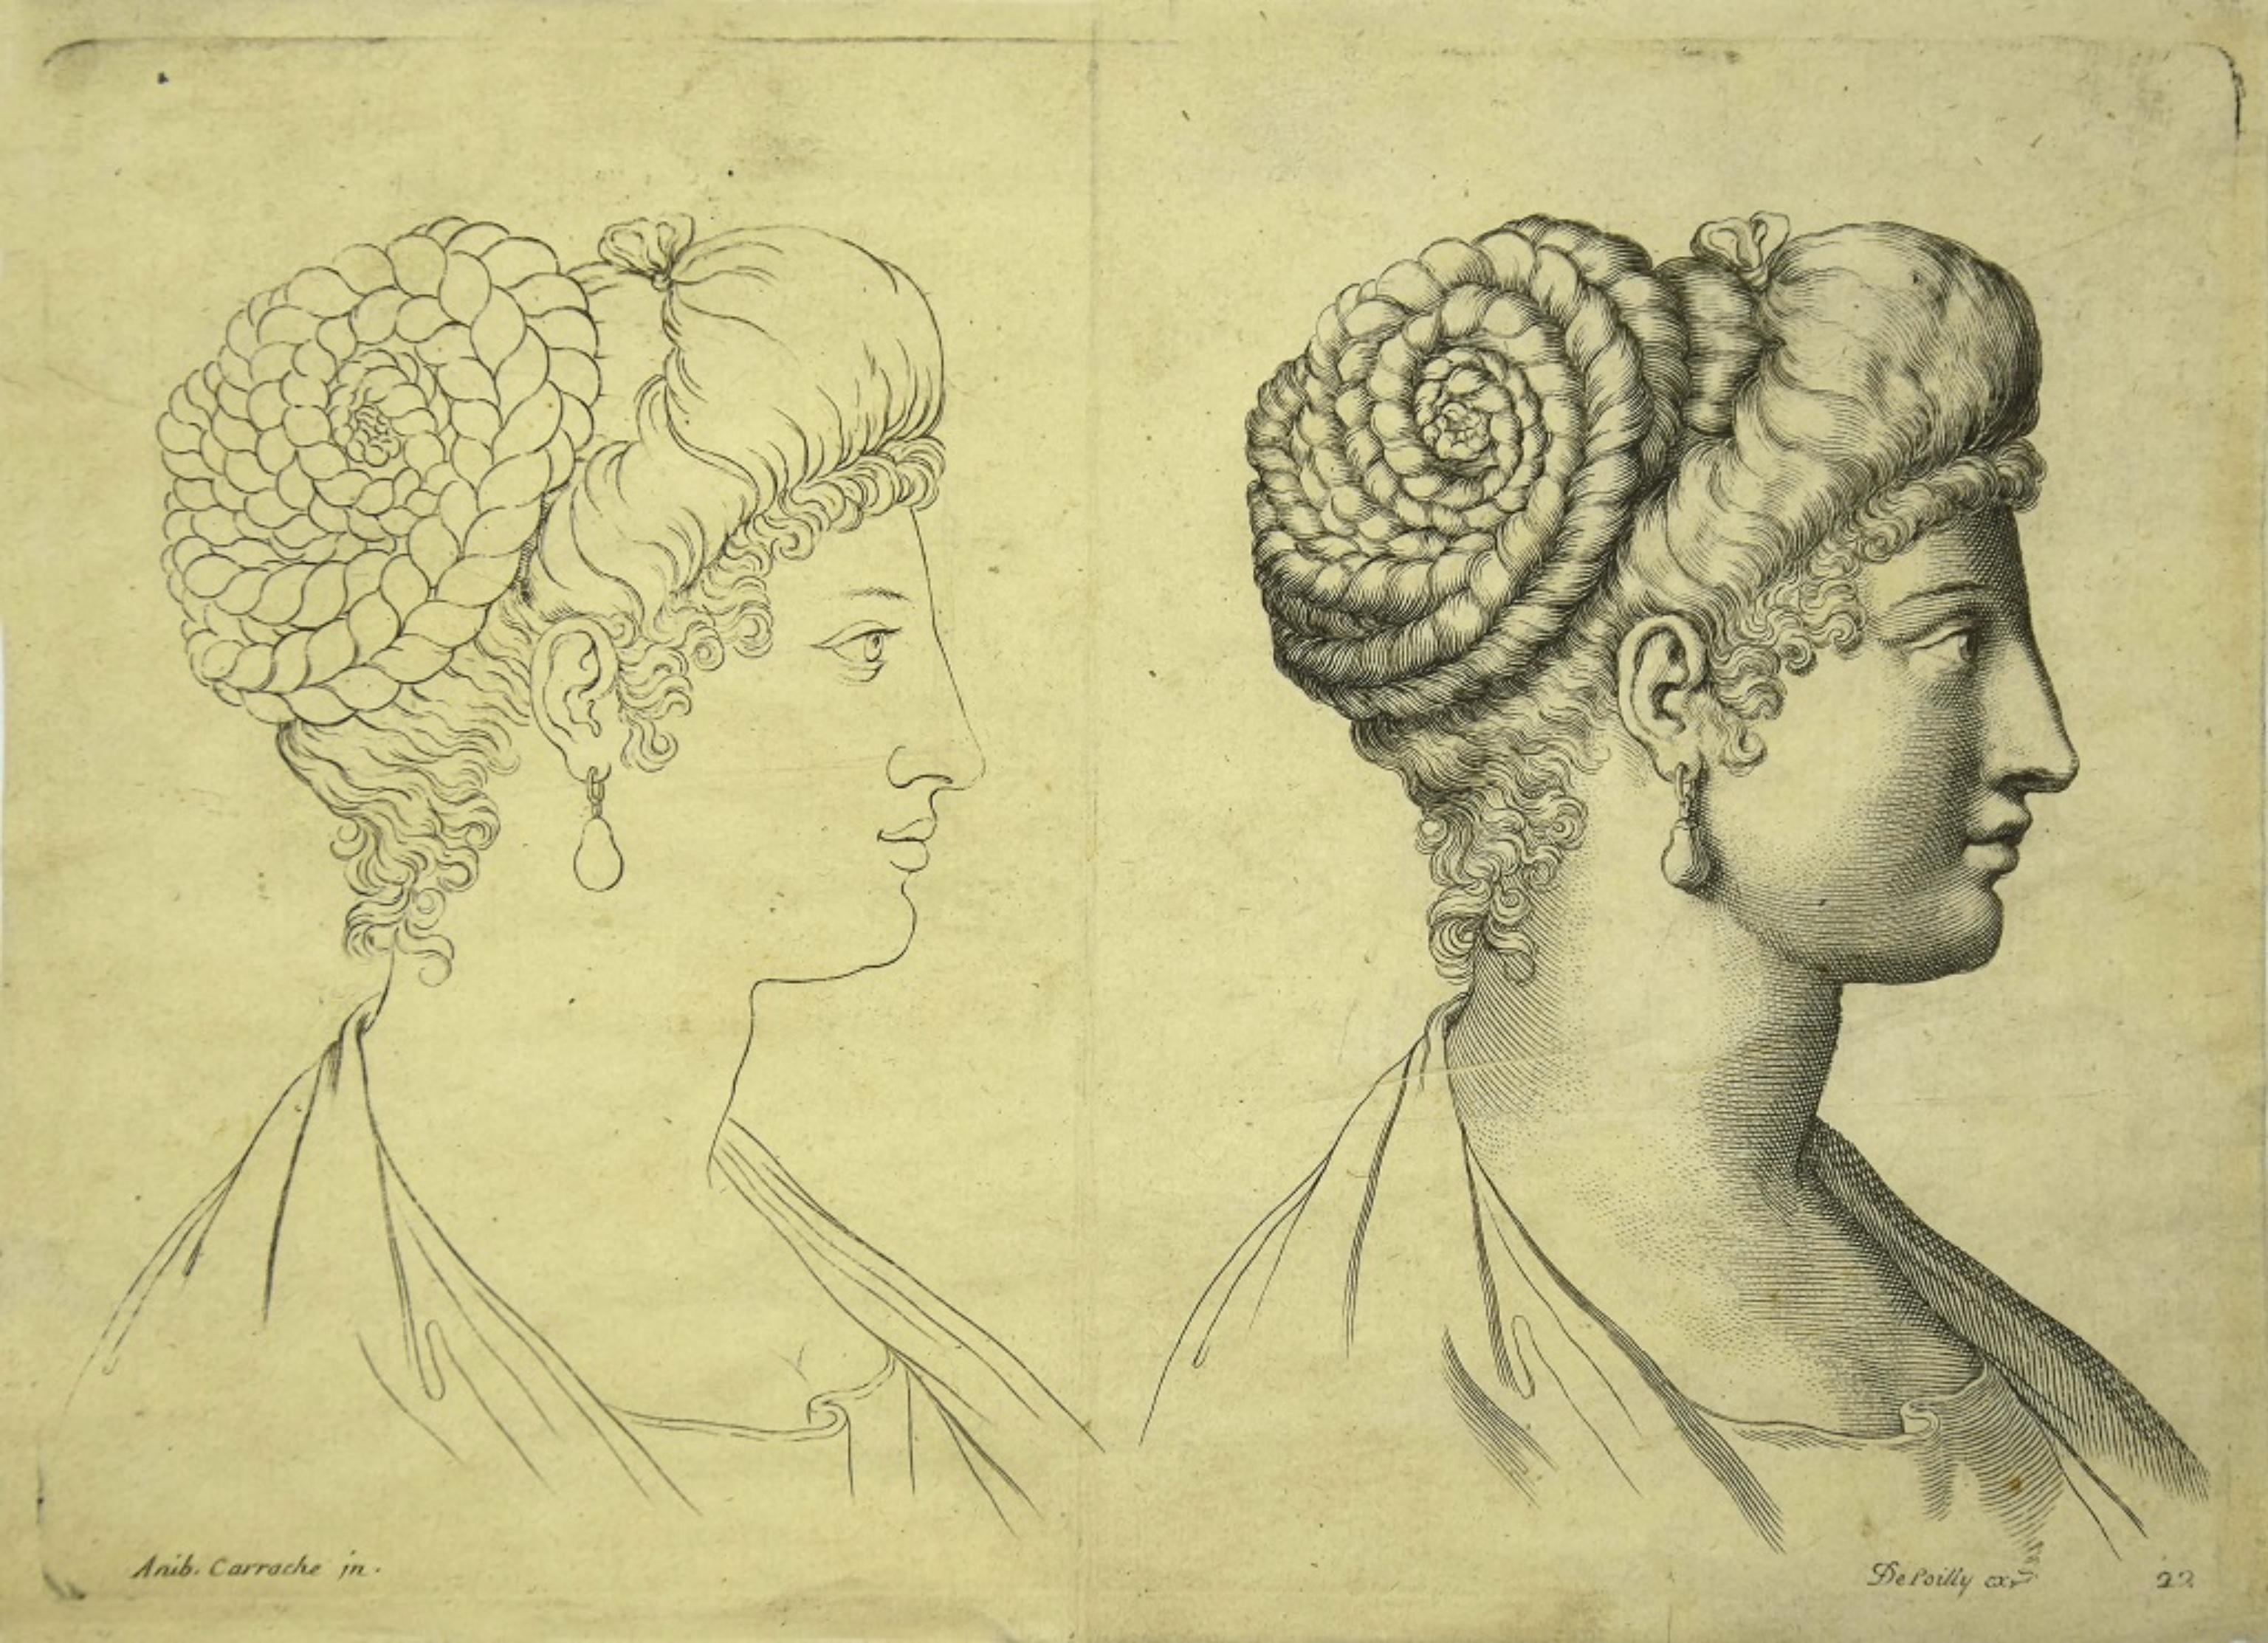 Female Portraits - Original Etching After Annibale Carracci - 17th Century